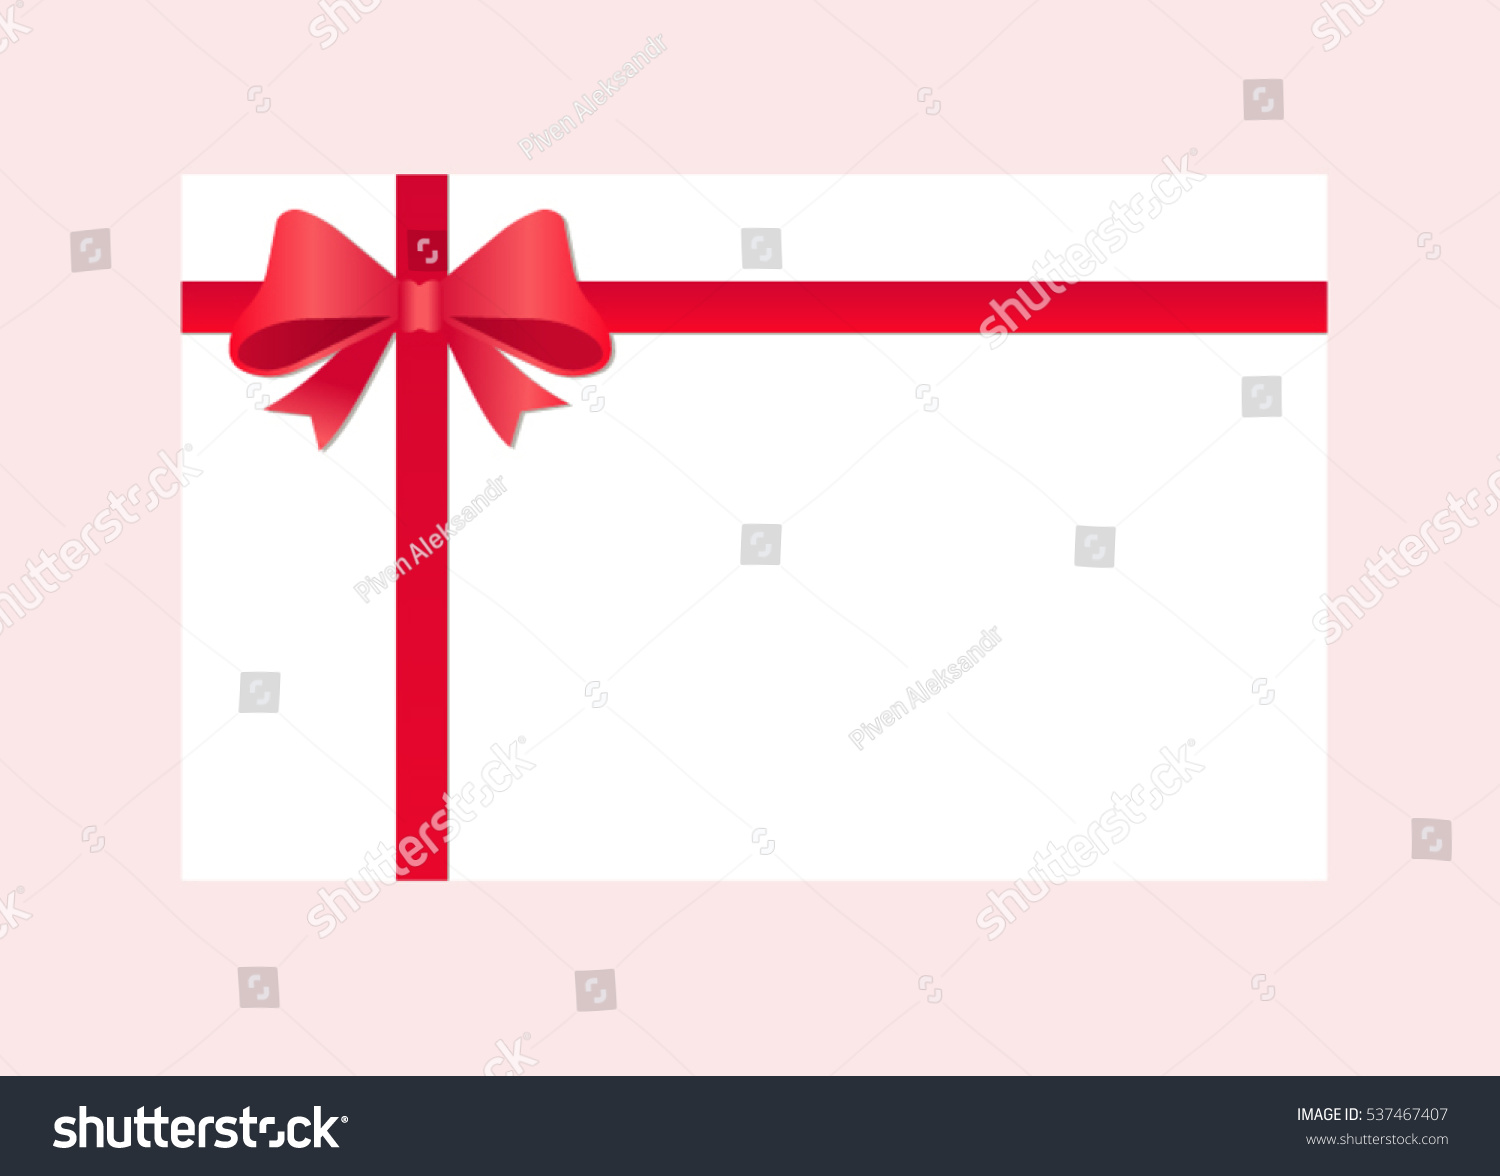 gift card red ribbon bow gift stock vector shutterstock gift card red ribbon and a bow gift voucher template vector image